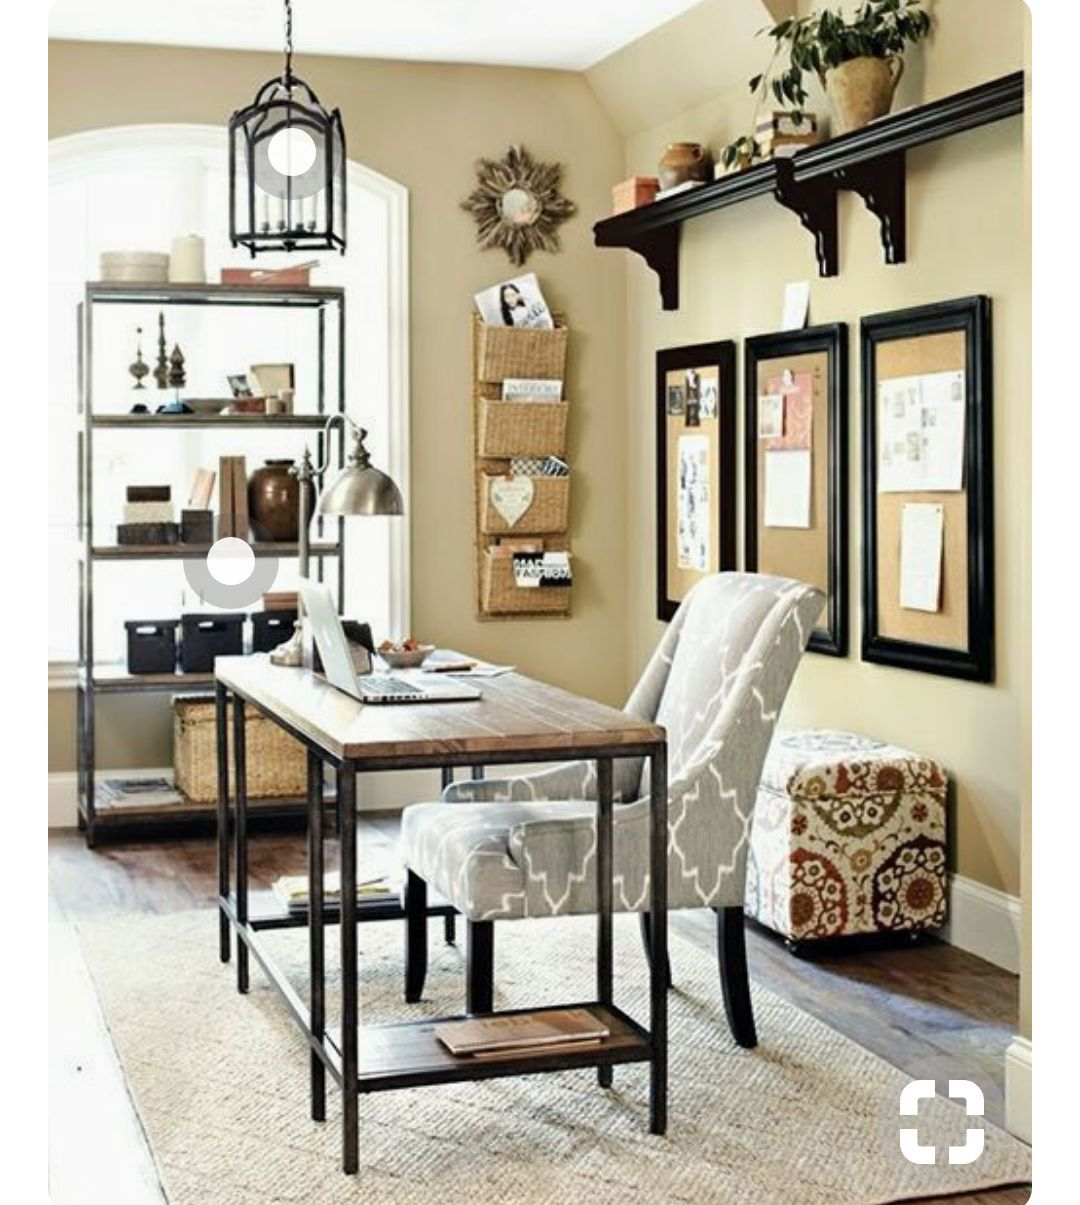 I Love The Look Of This Office, But Would Like It To Be